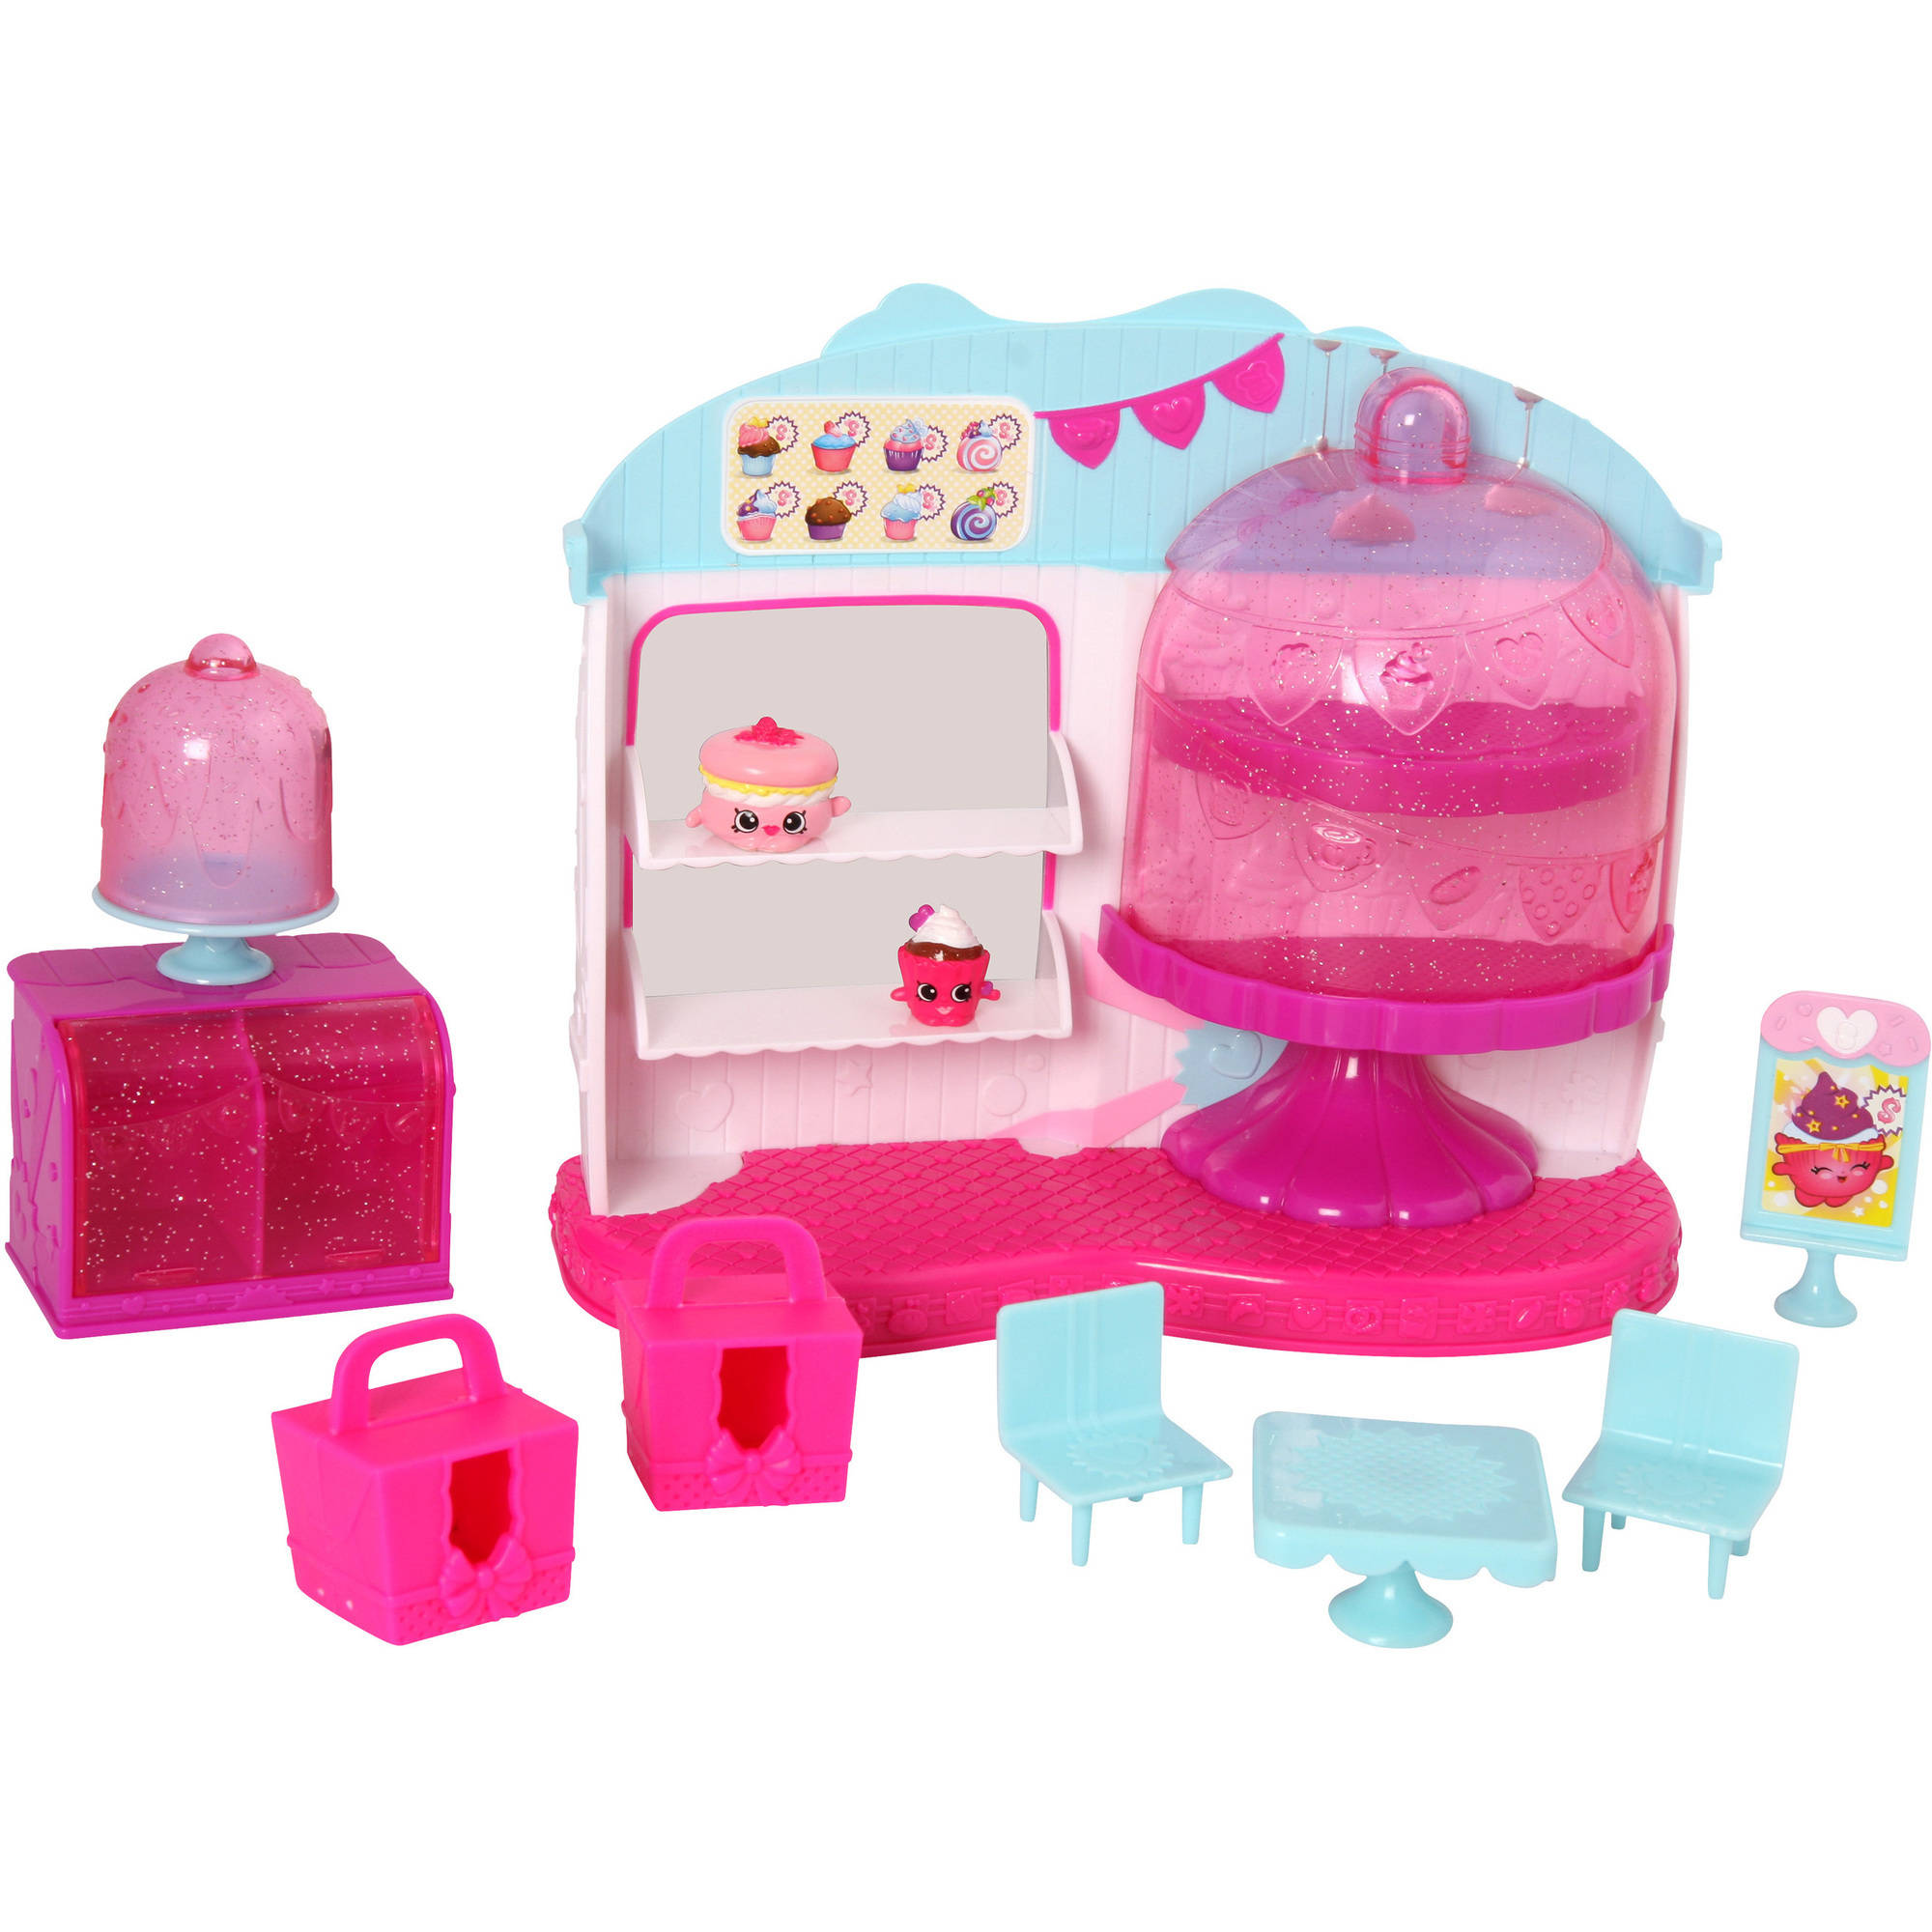 Shopkins S4 MP PLAYS Queens Cup Cake Play-Set